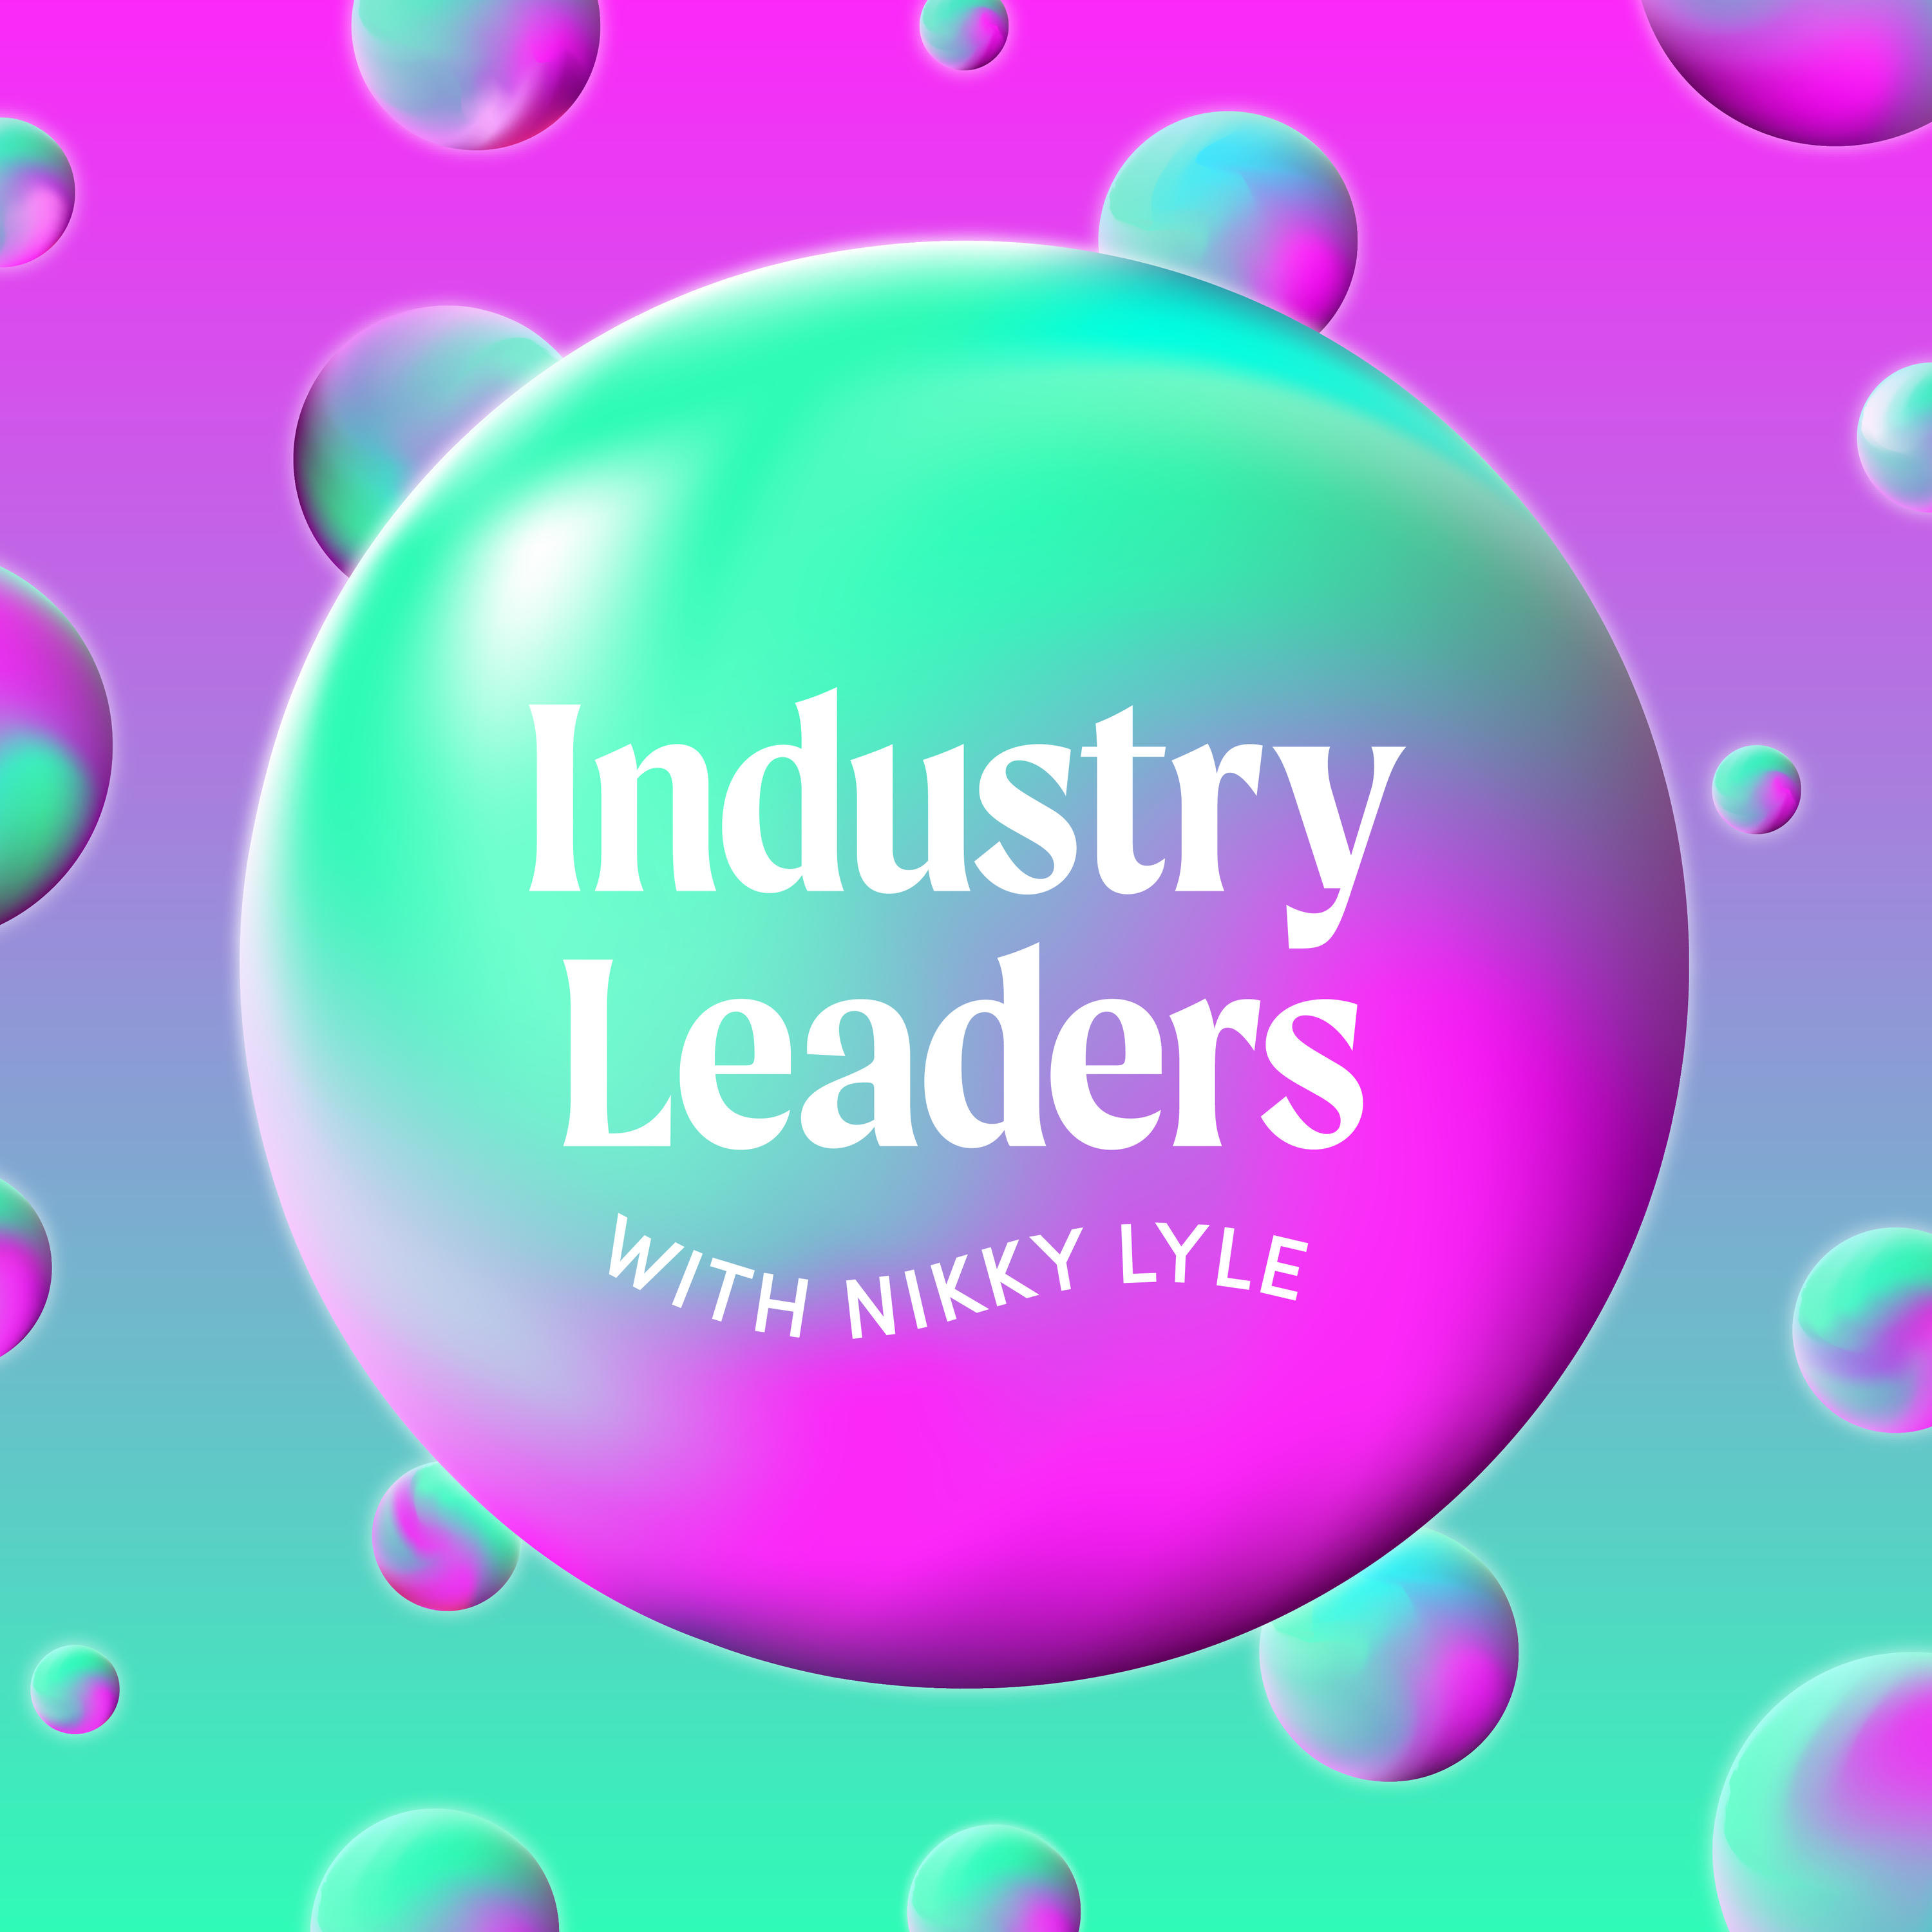 Industry Leaders with Nikky Lyle: Vikki Ross, Wordsmith and Copywriter